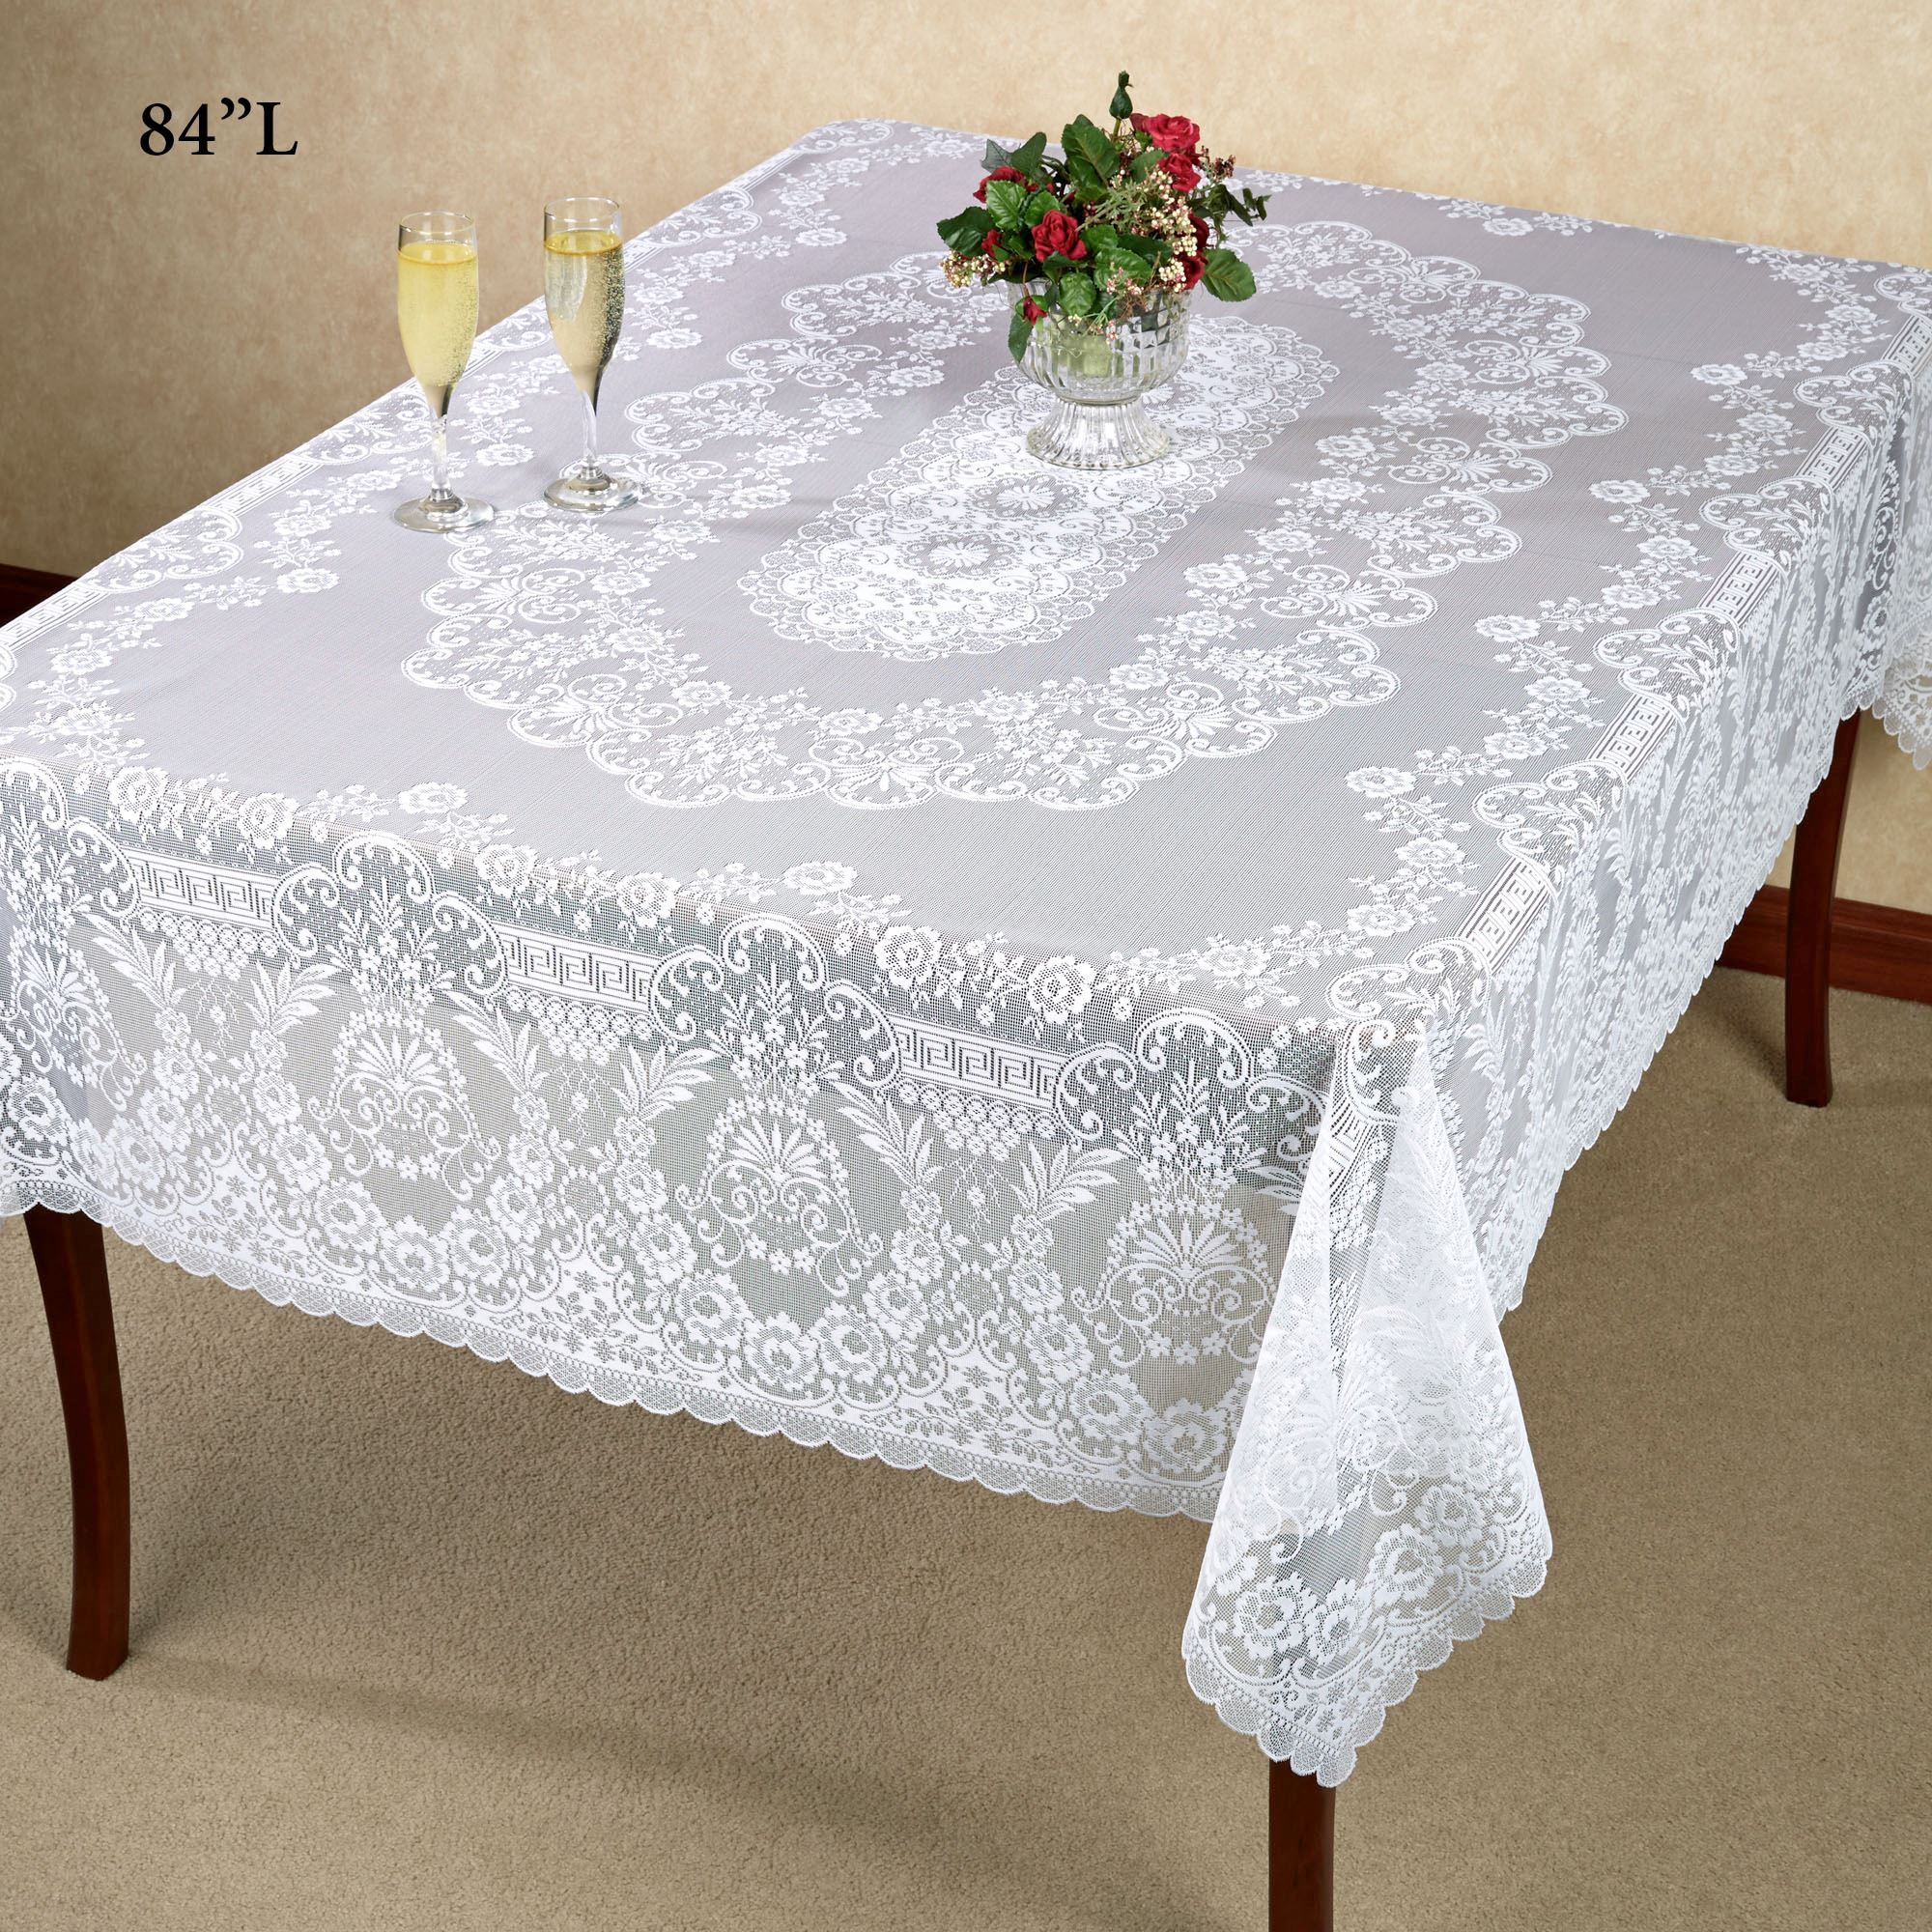 hadleigh white lace tablecloth round accent table cloths oblong long west elm top ikea storage solutions lamp shades for wall lights glass door cabinet pottery barn entryway